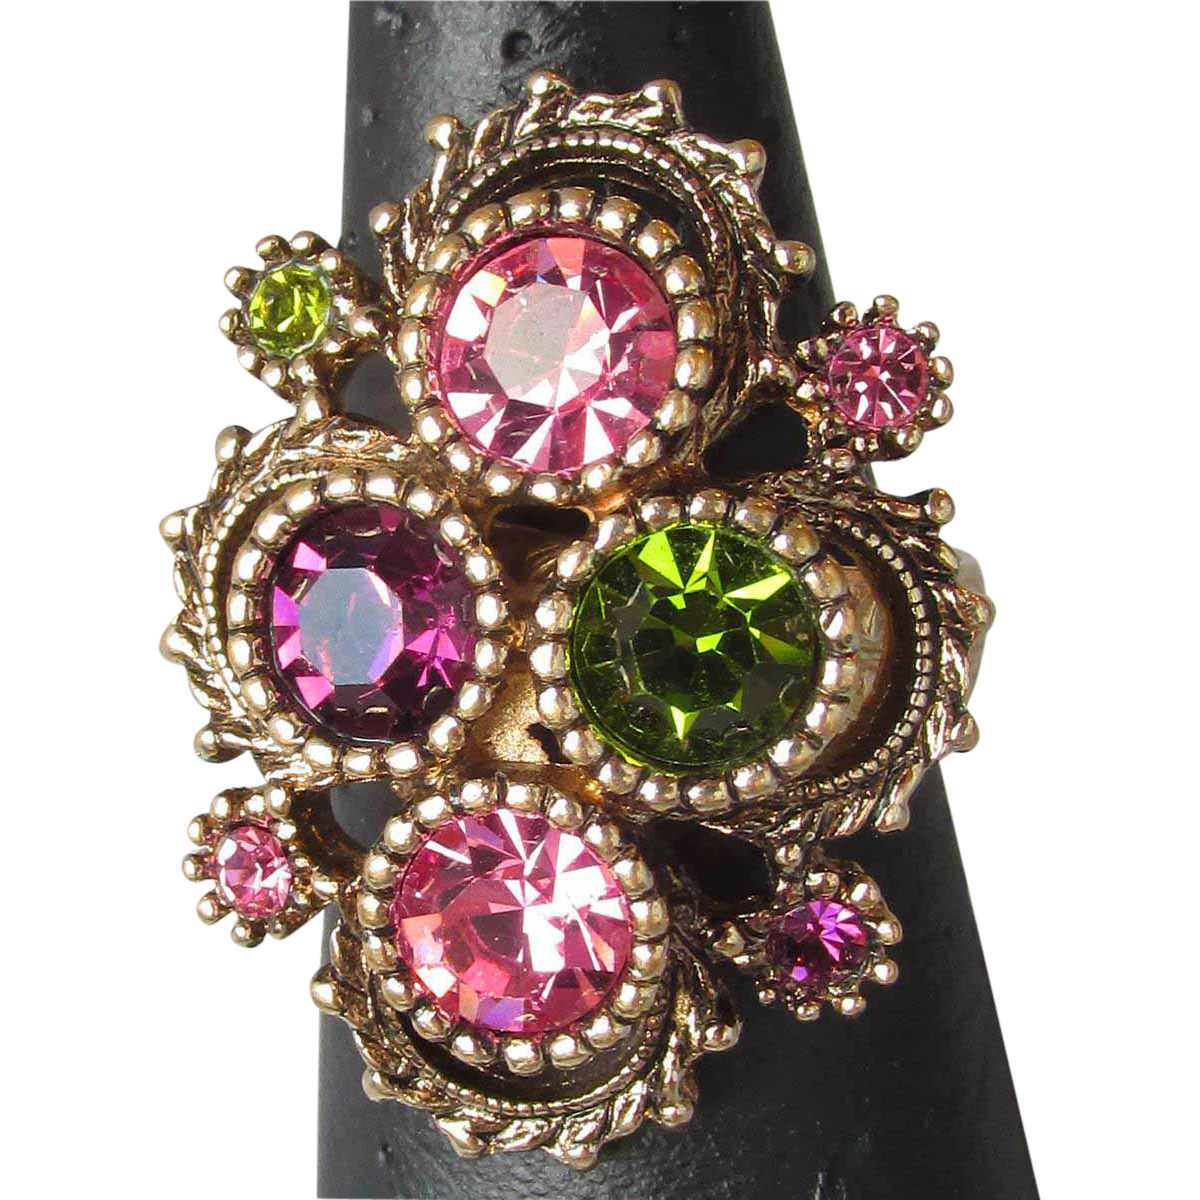 Vintage 1973 Sarah Coventry Austrian Lites Adjustable Pink Rhinestone Cocktail Ring